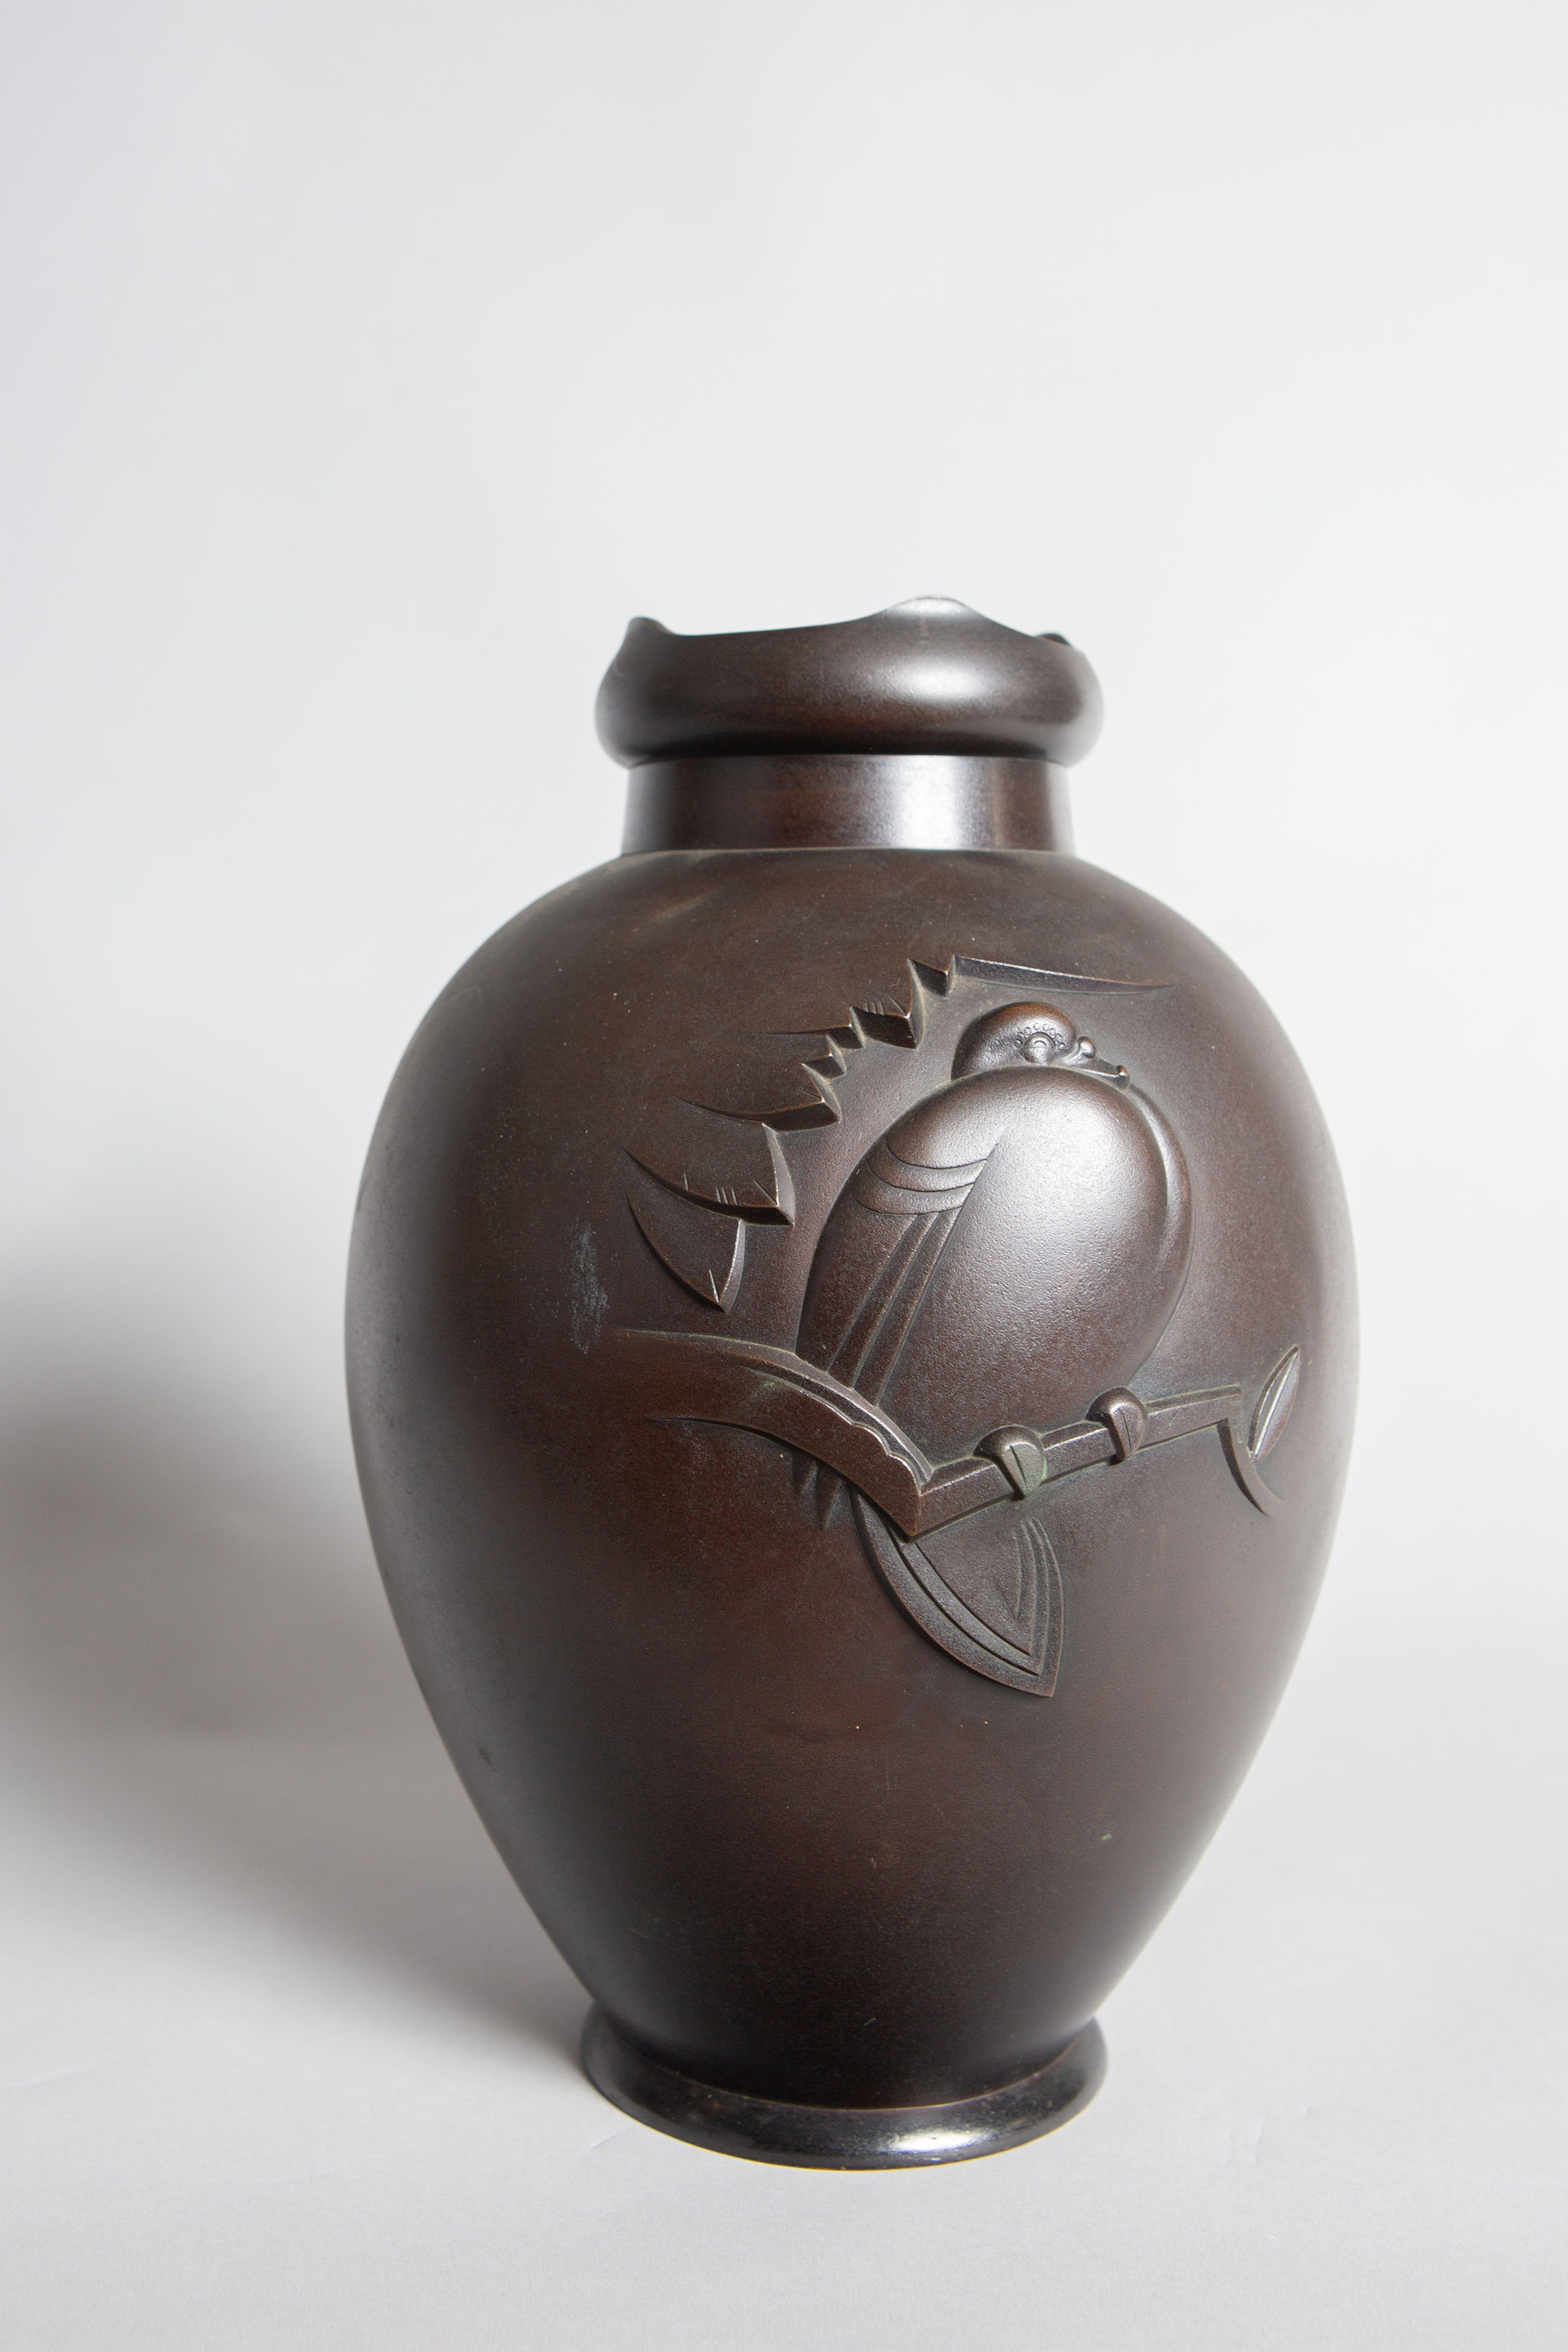 Japanese Bronze Vase with Pigeon Design